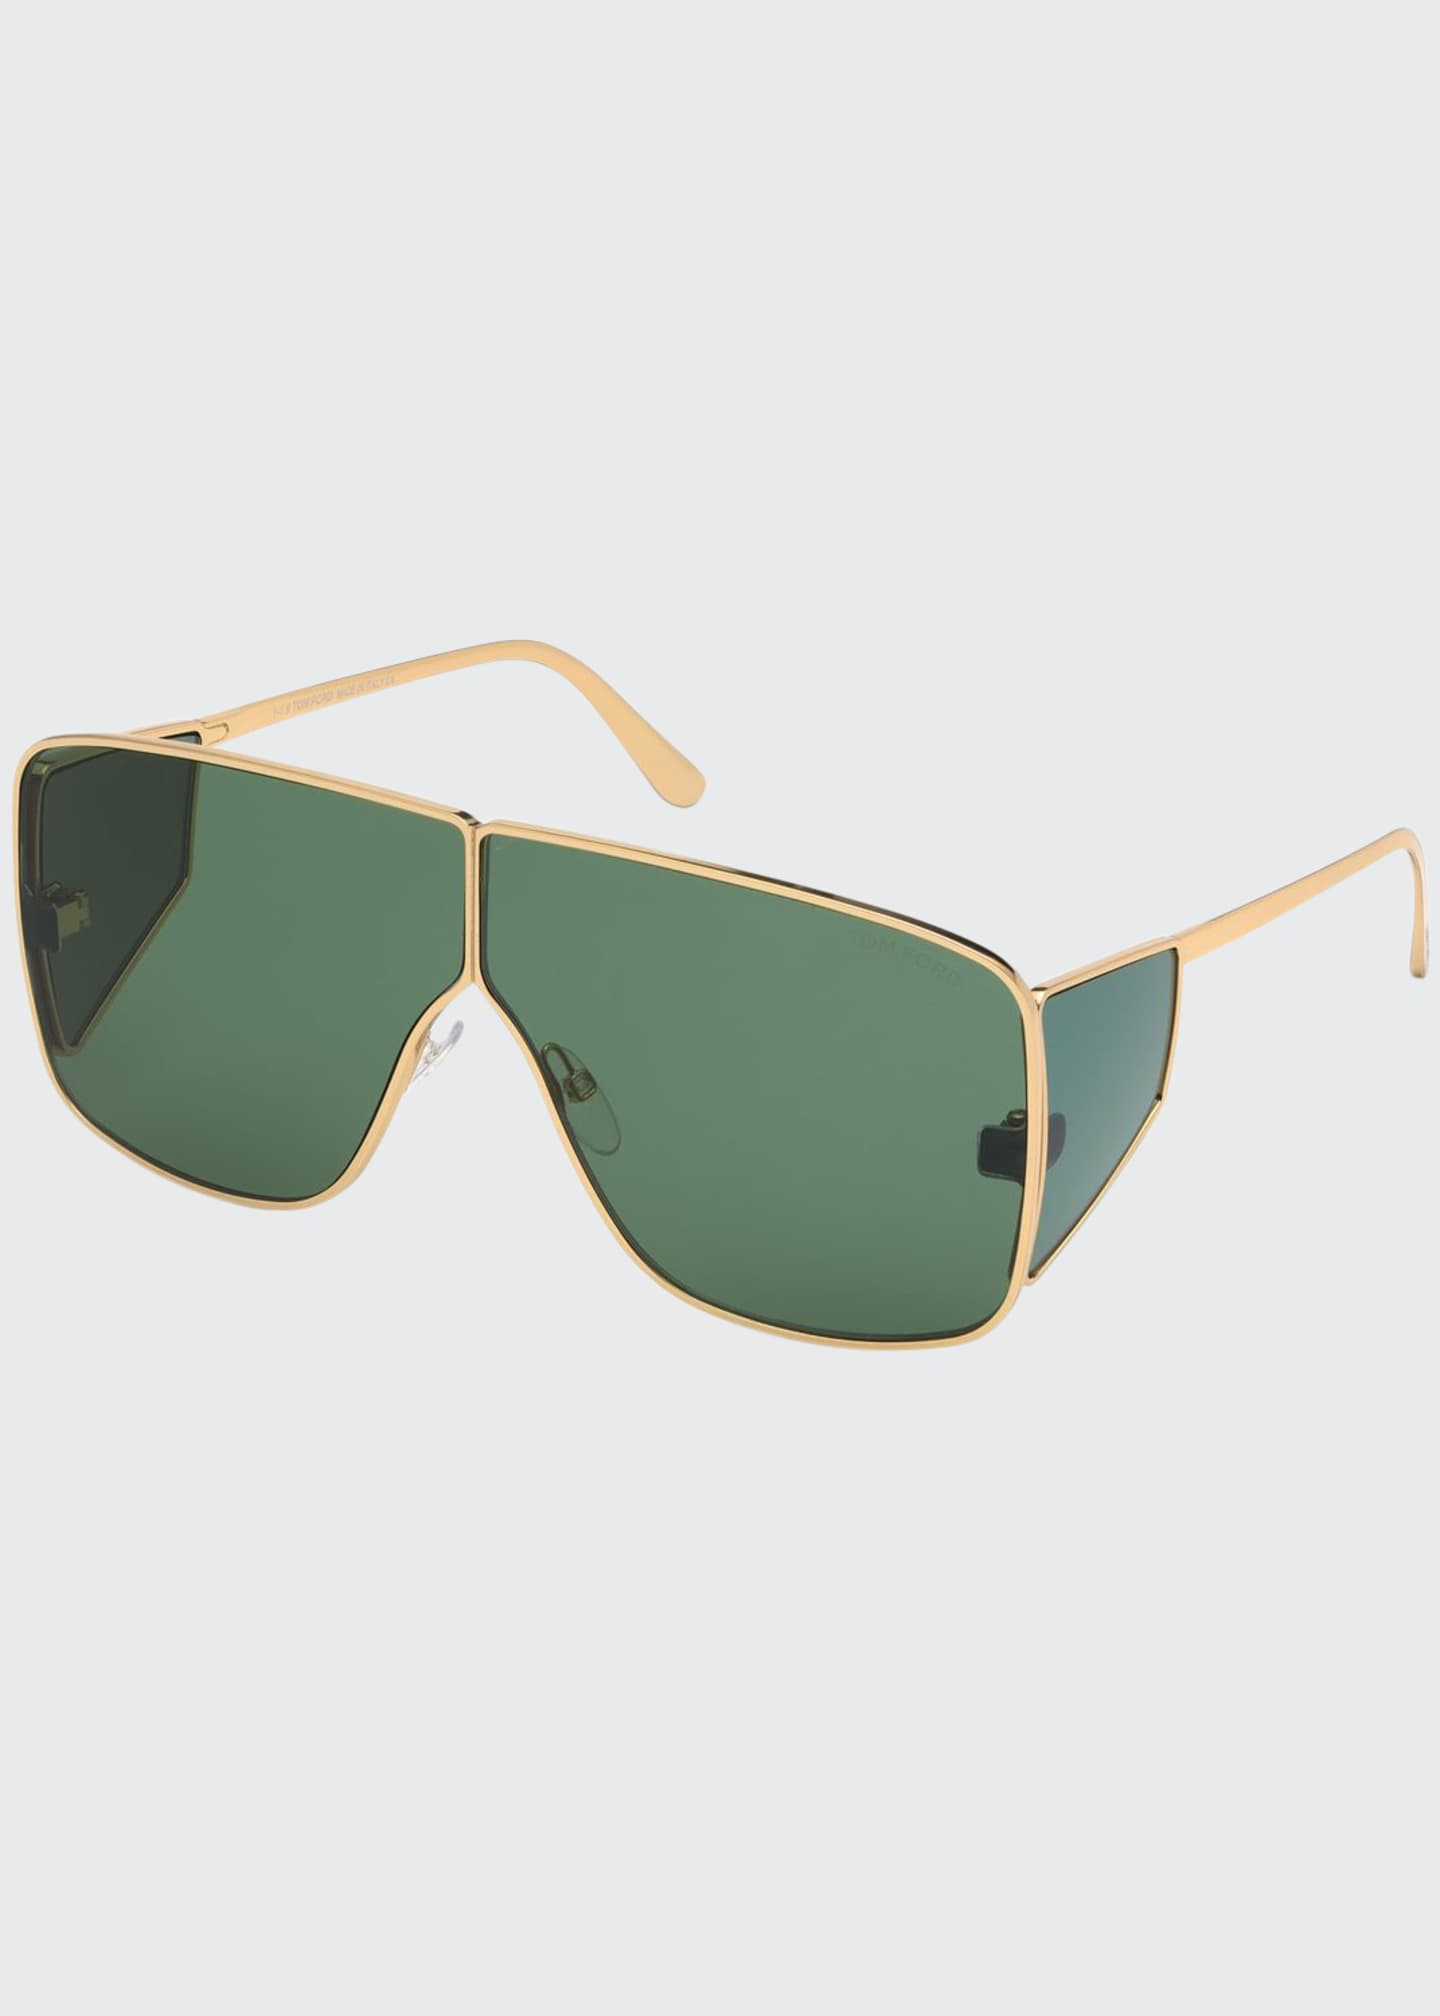 TOM FORD Men's Spector Metal Shield Sunglasses